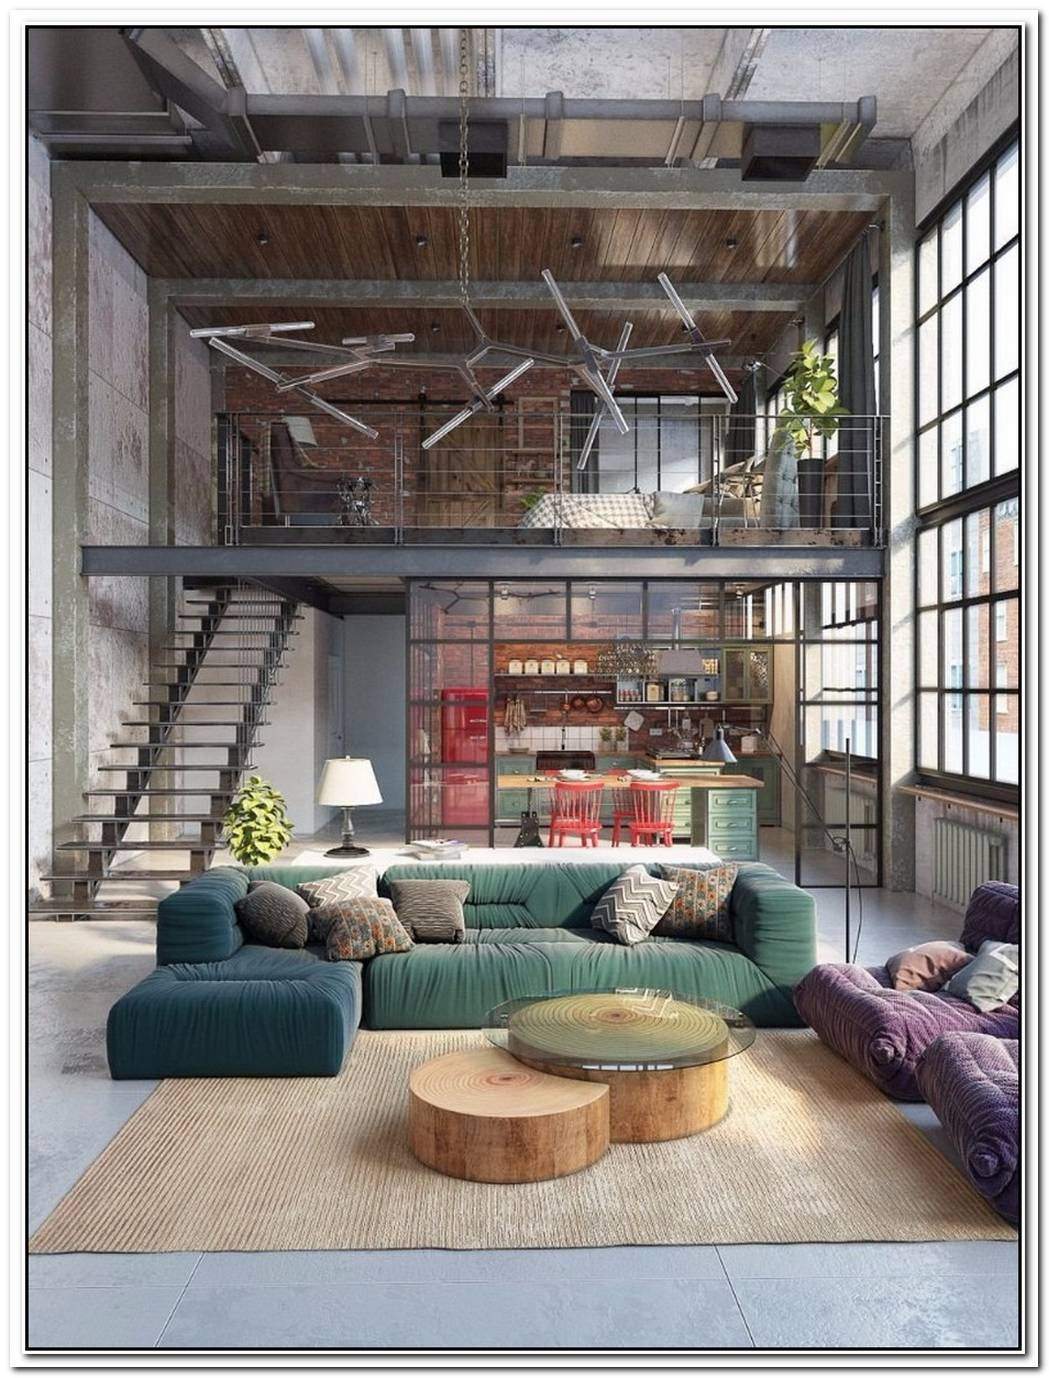 Loft Living Interior Design Ideas